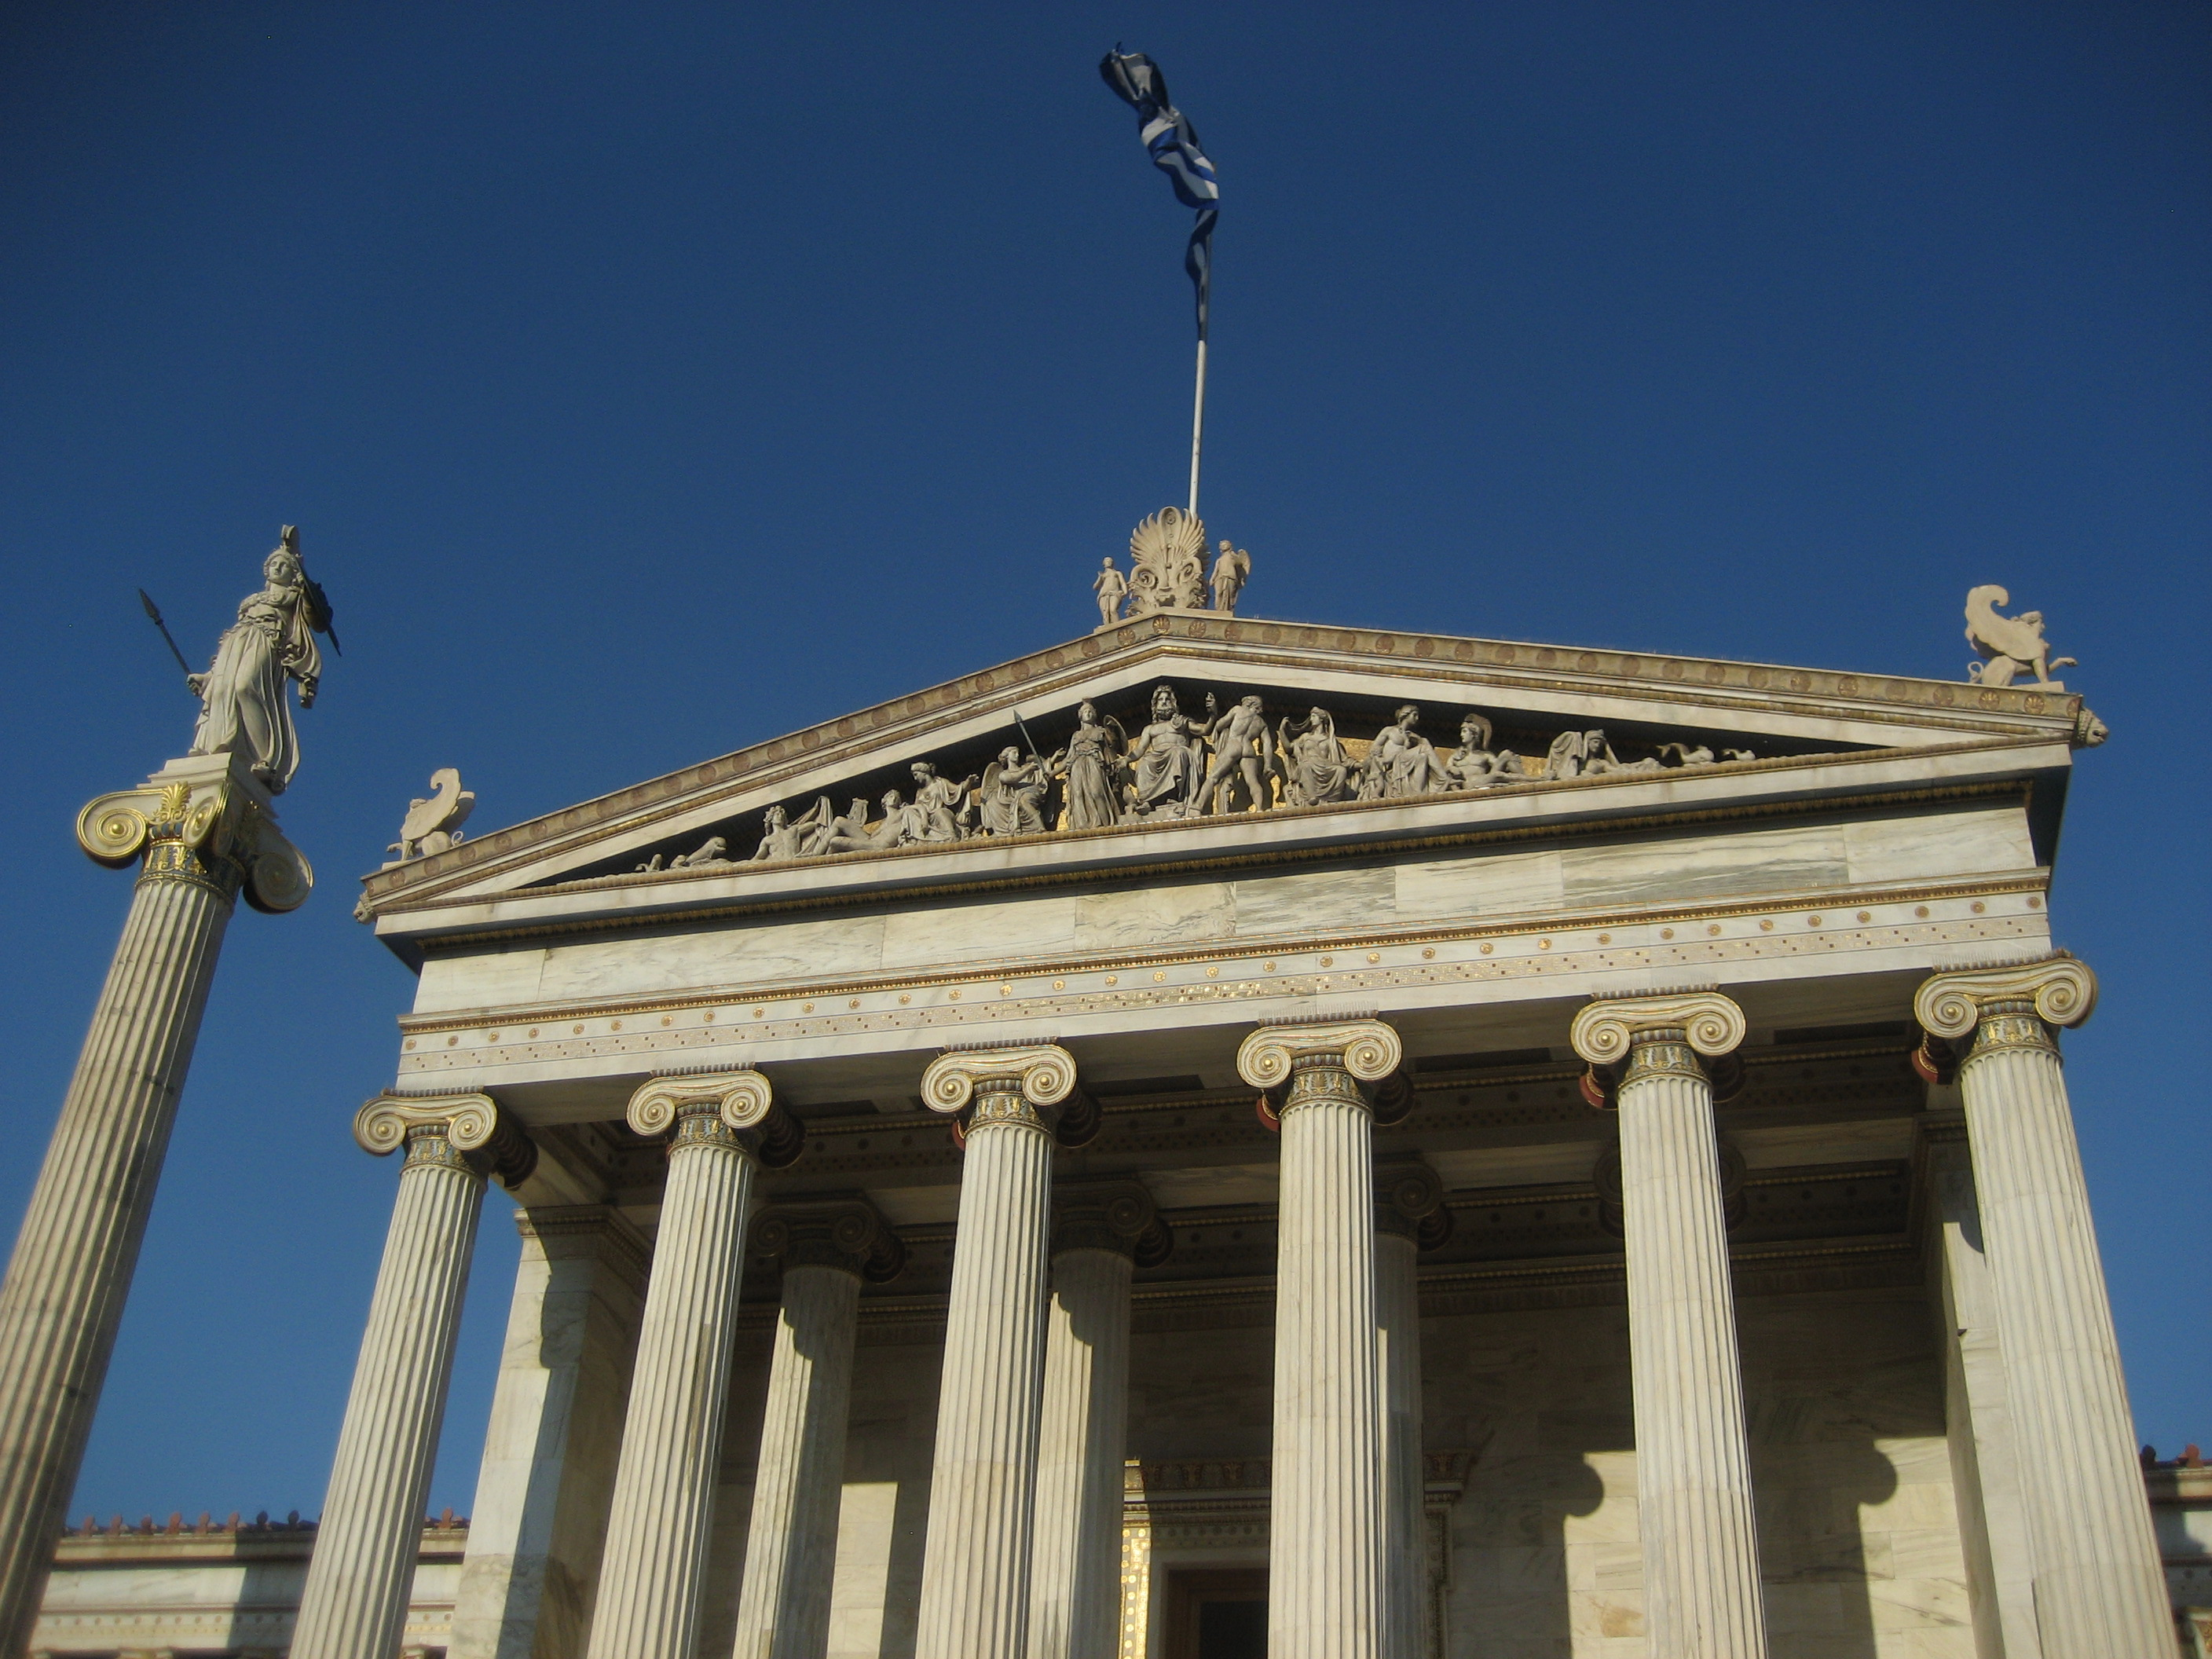 Greek Architectural Styles Guide